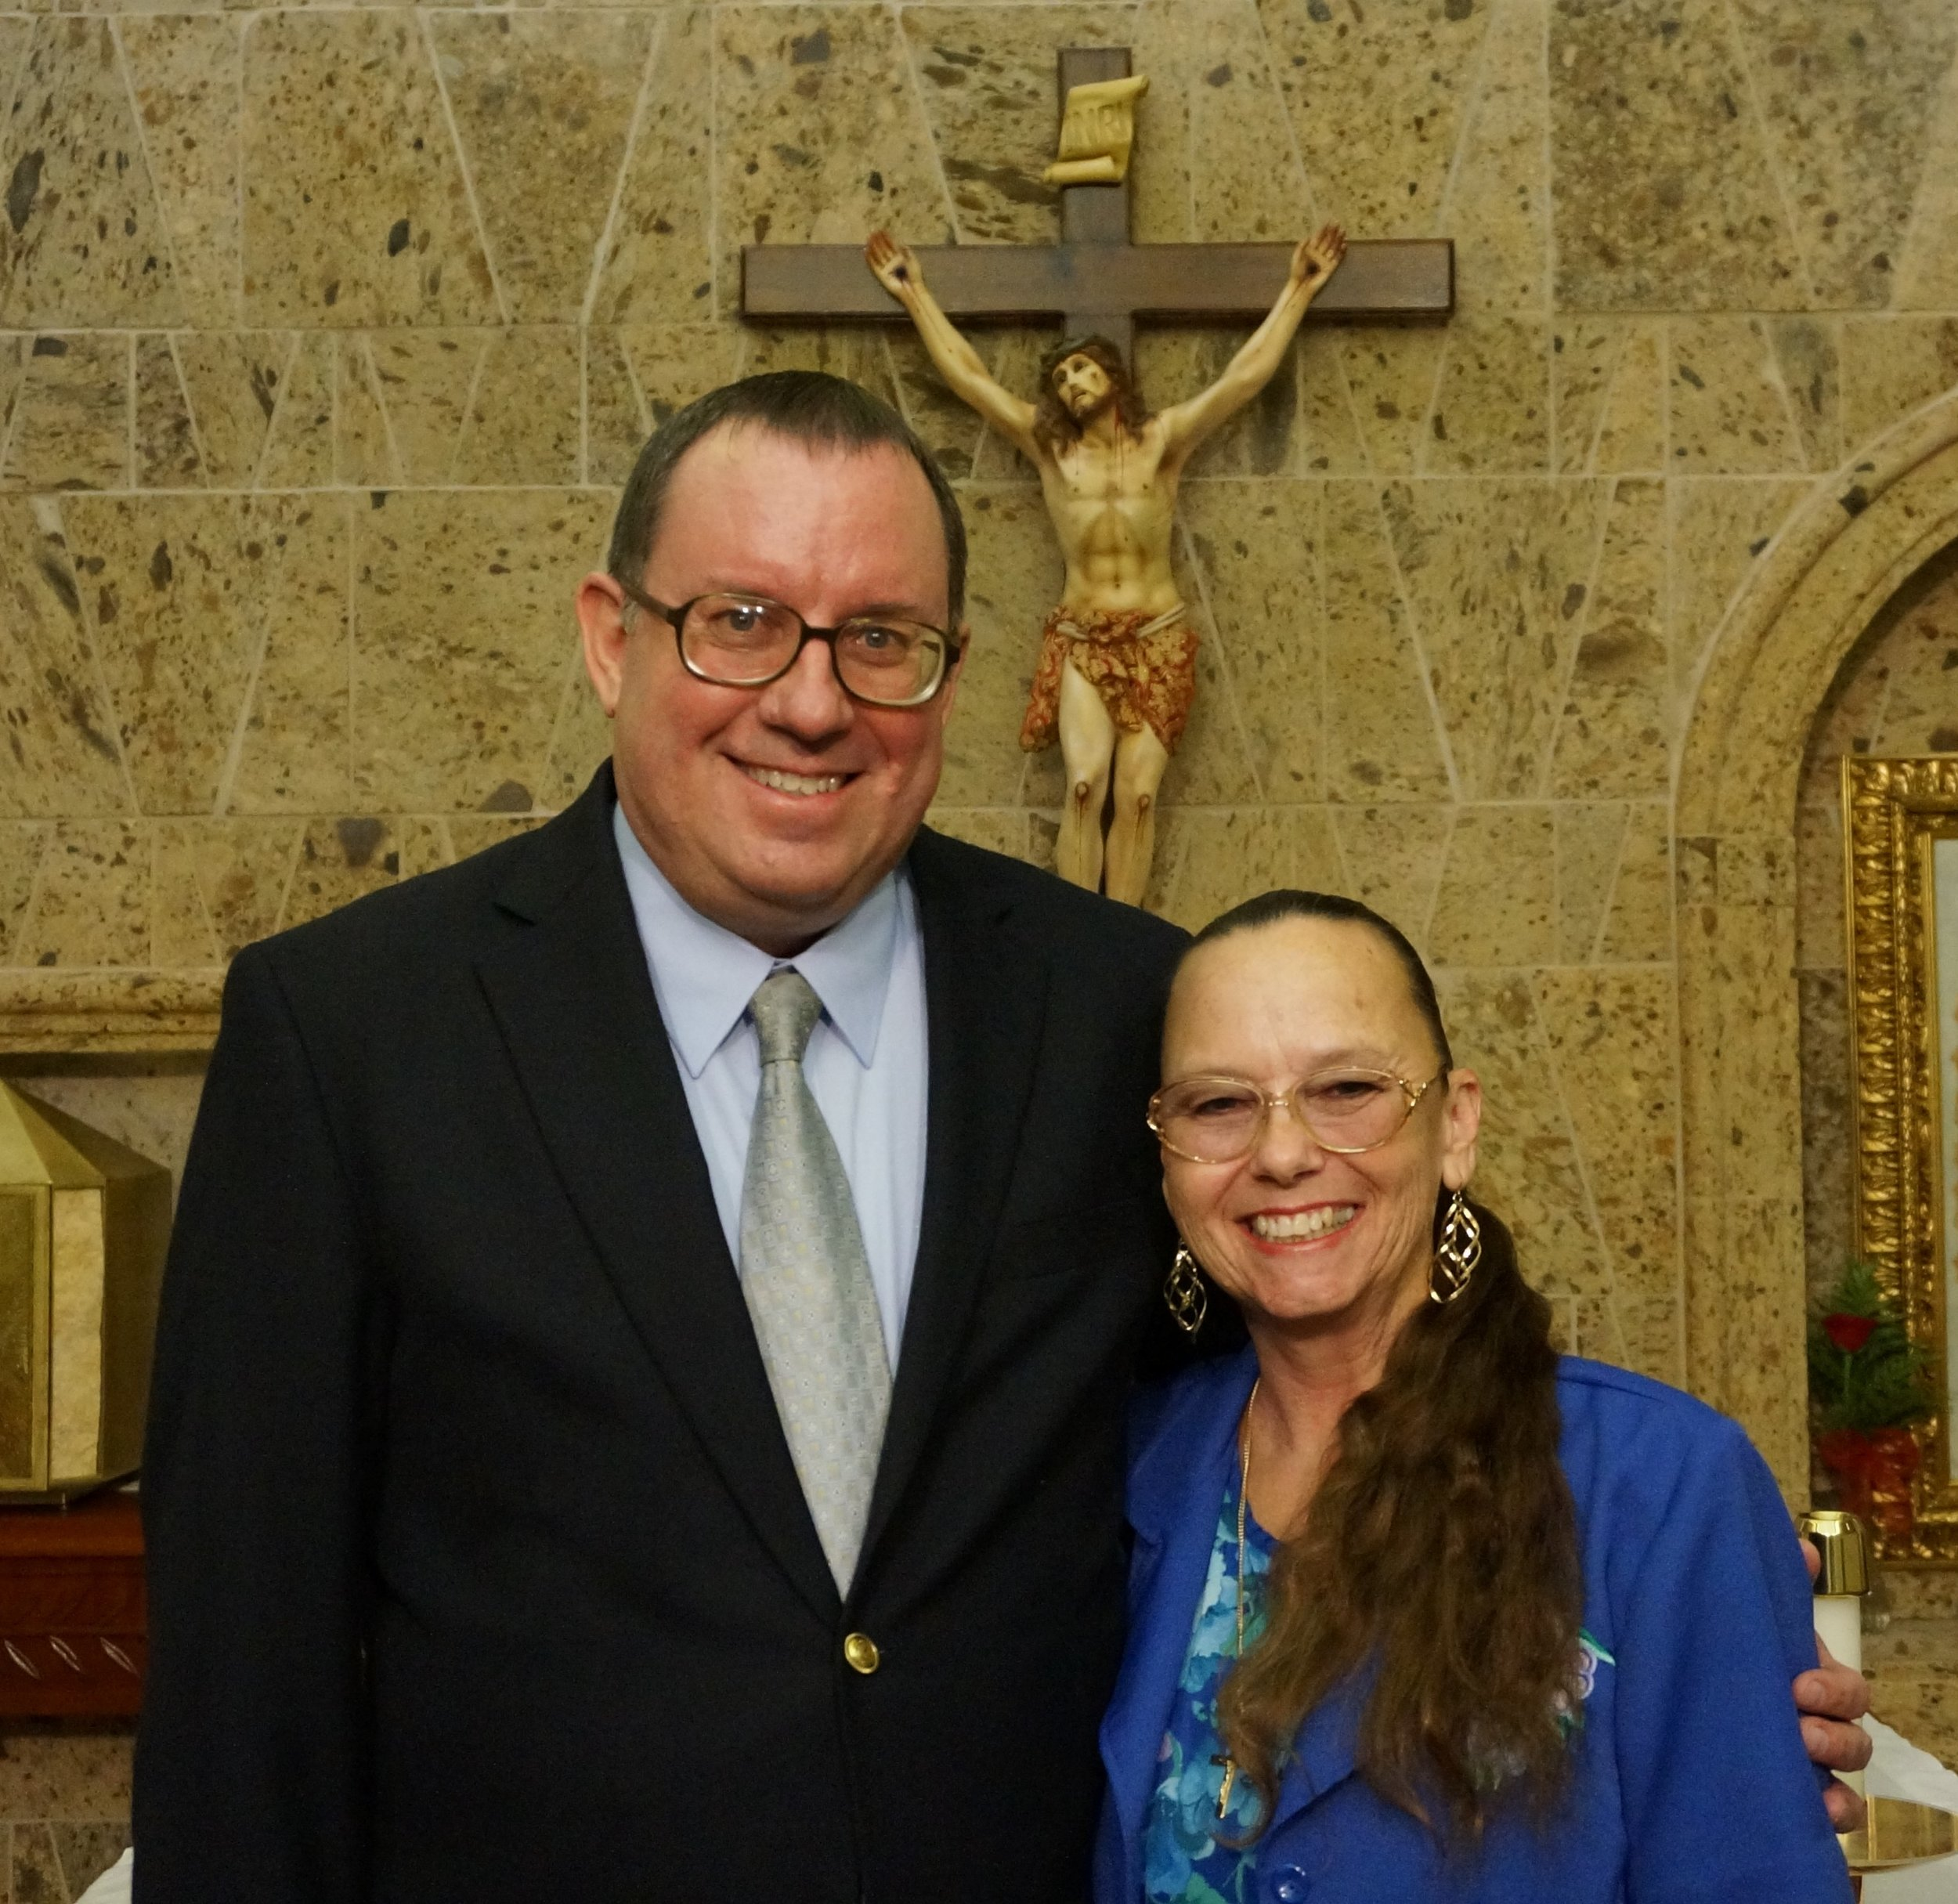 Deacon Stephen and his wife Shelly